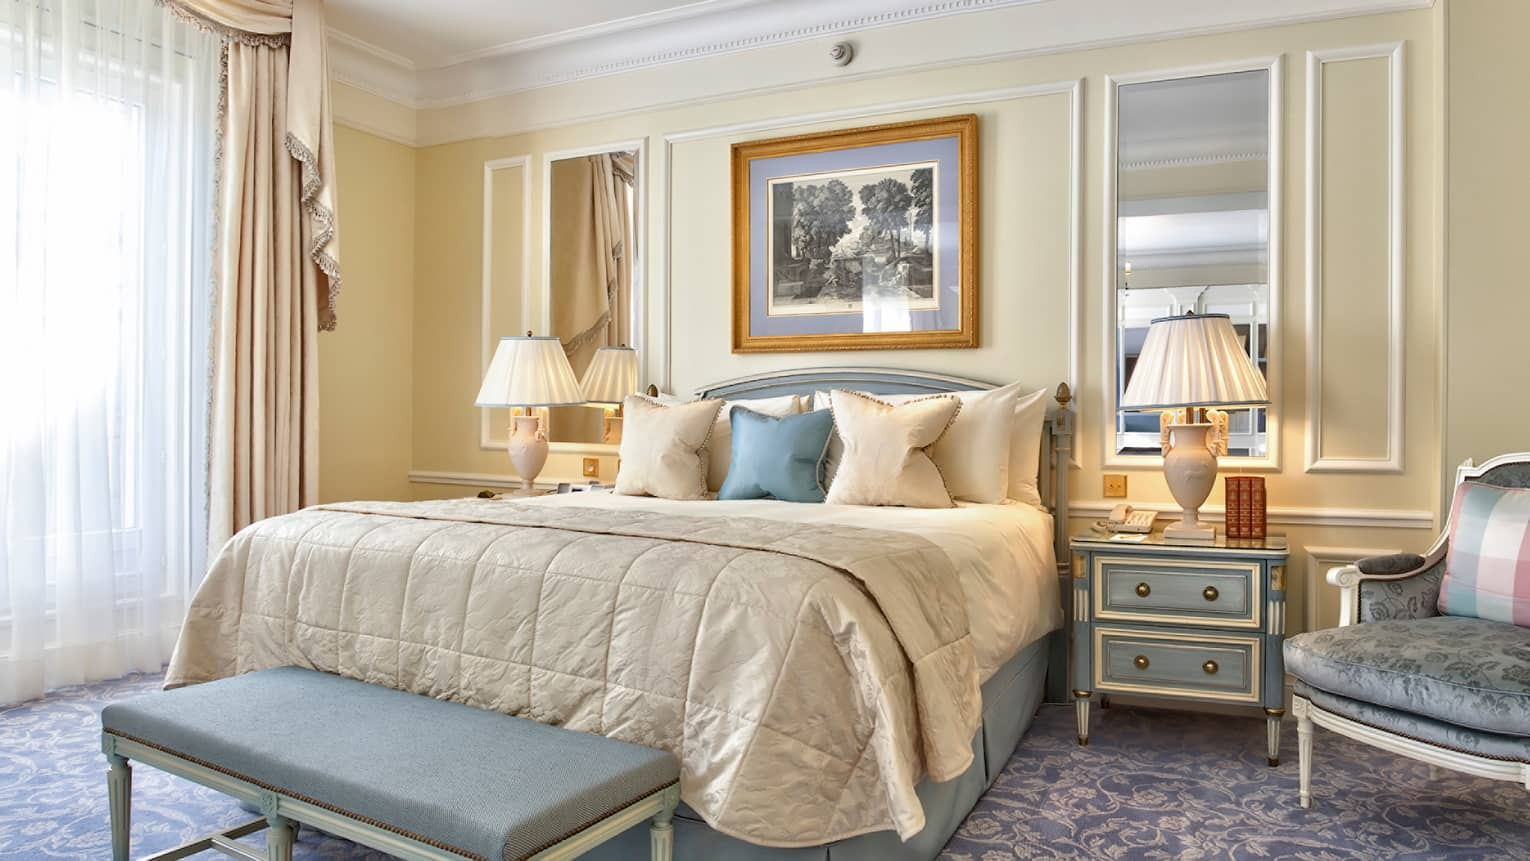 Premier Room Bed, Blue And White Accent Pillows, Bench Under Framed Sketch